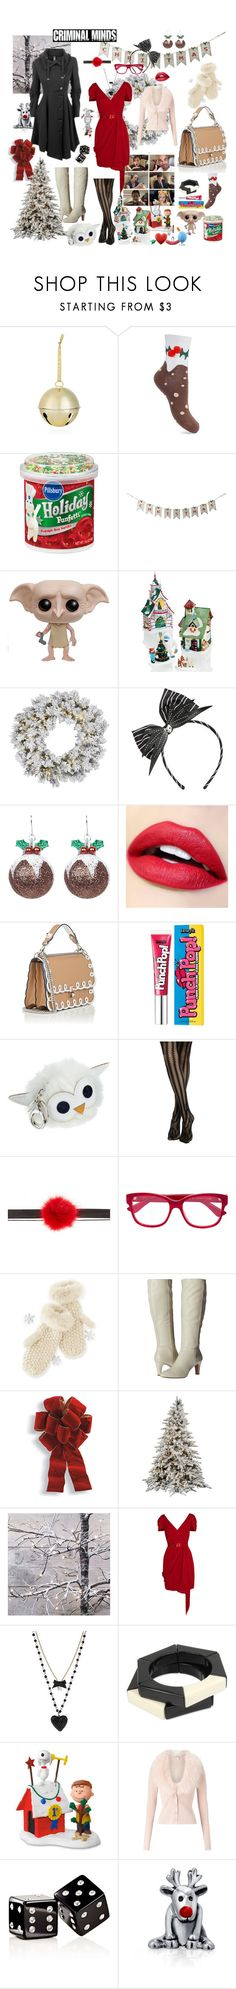 """""""Christmas Penelope"""" by missmoxxie ❤ liked on Polyvore featuring Bloomingdale's, Miss Selfridge, Red Vanilla, Funko, Department 56, Loungefly, London Fog, Fendi, Benefit and Hot Topic"""